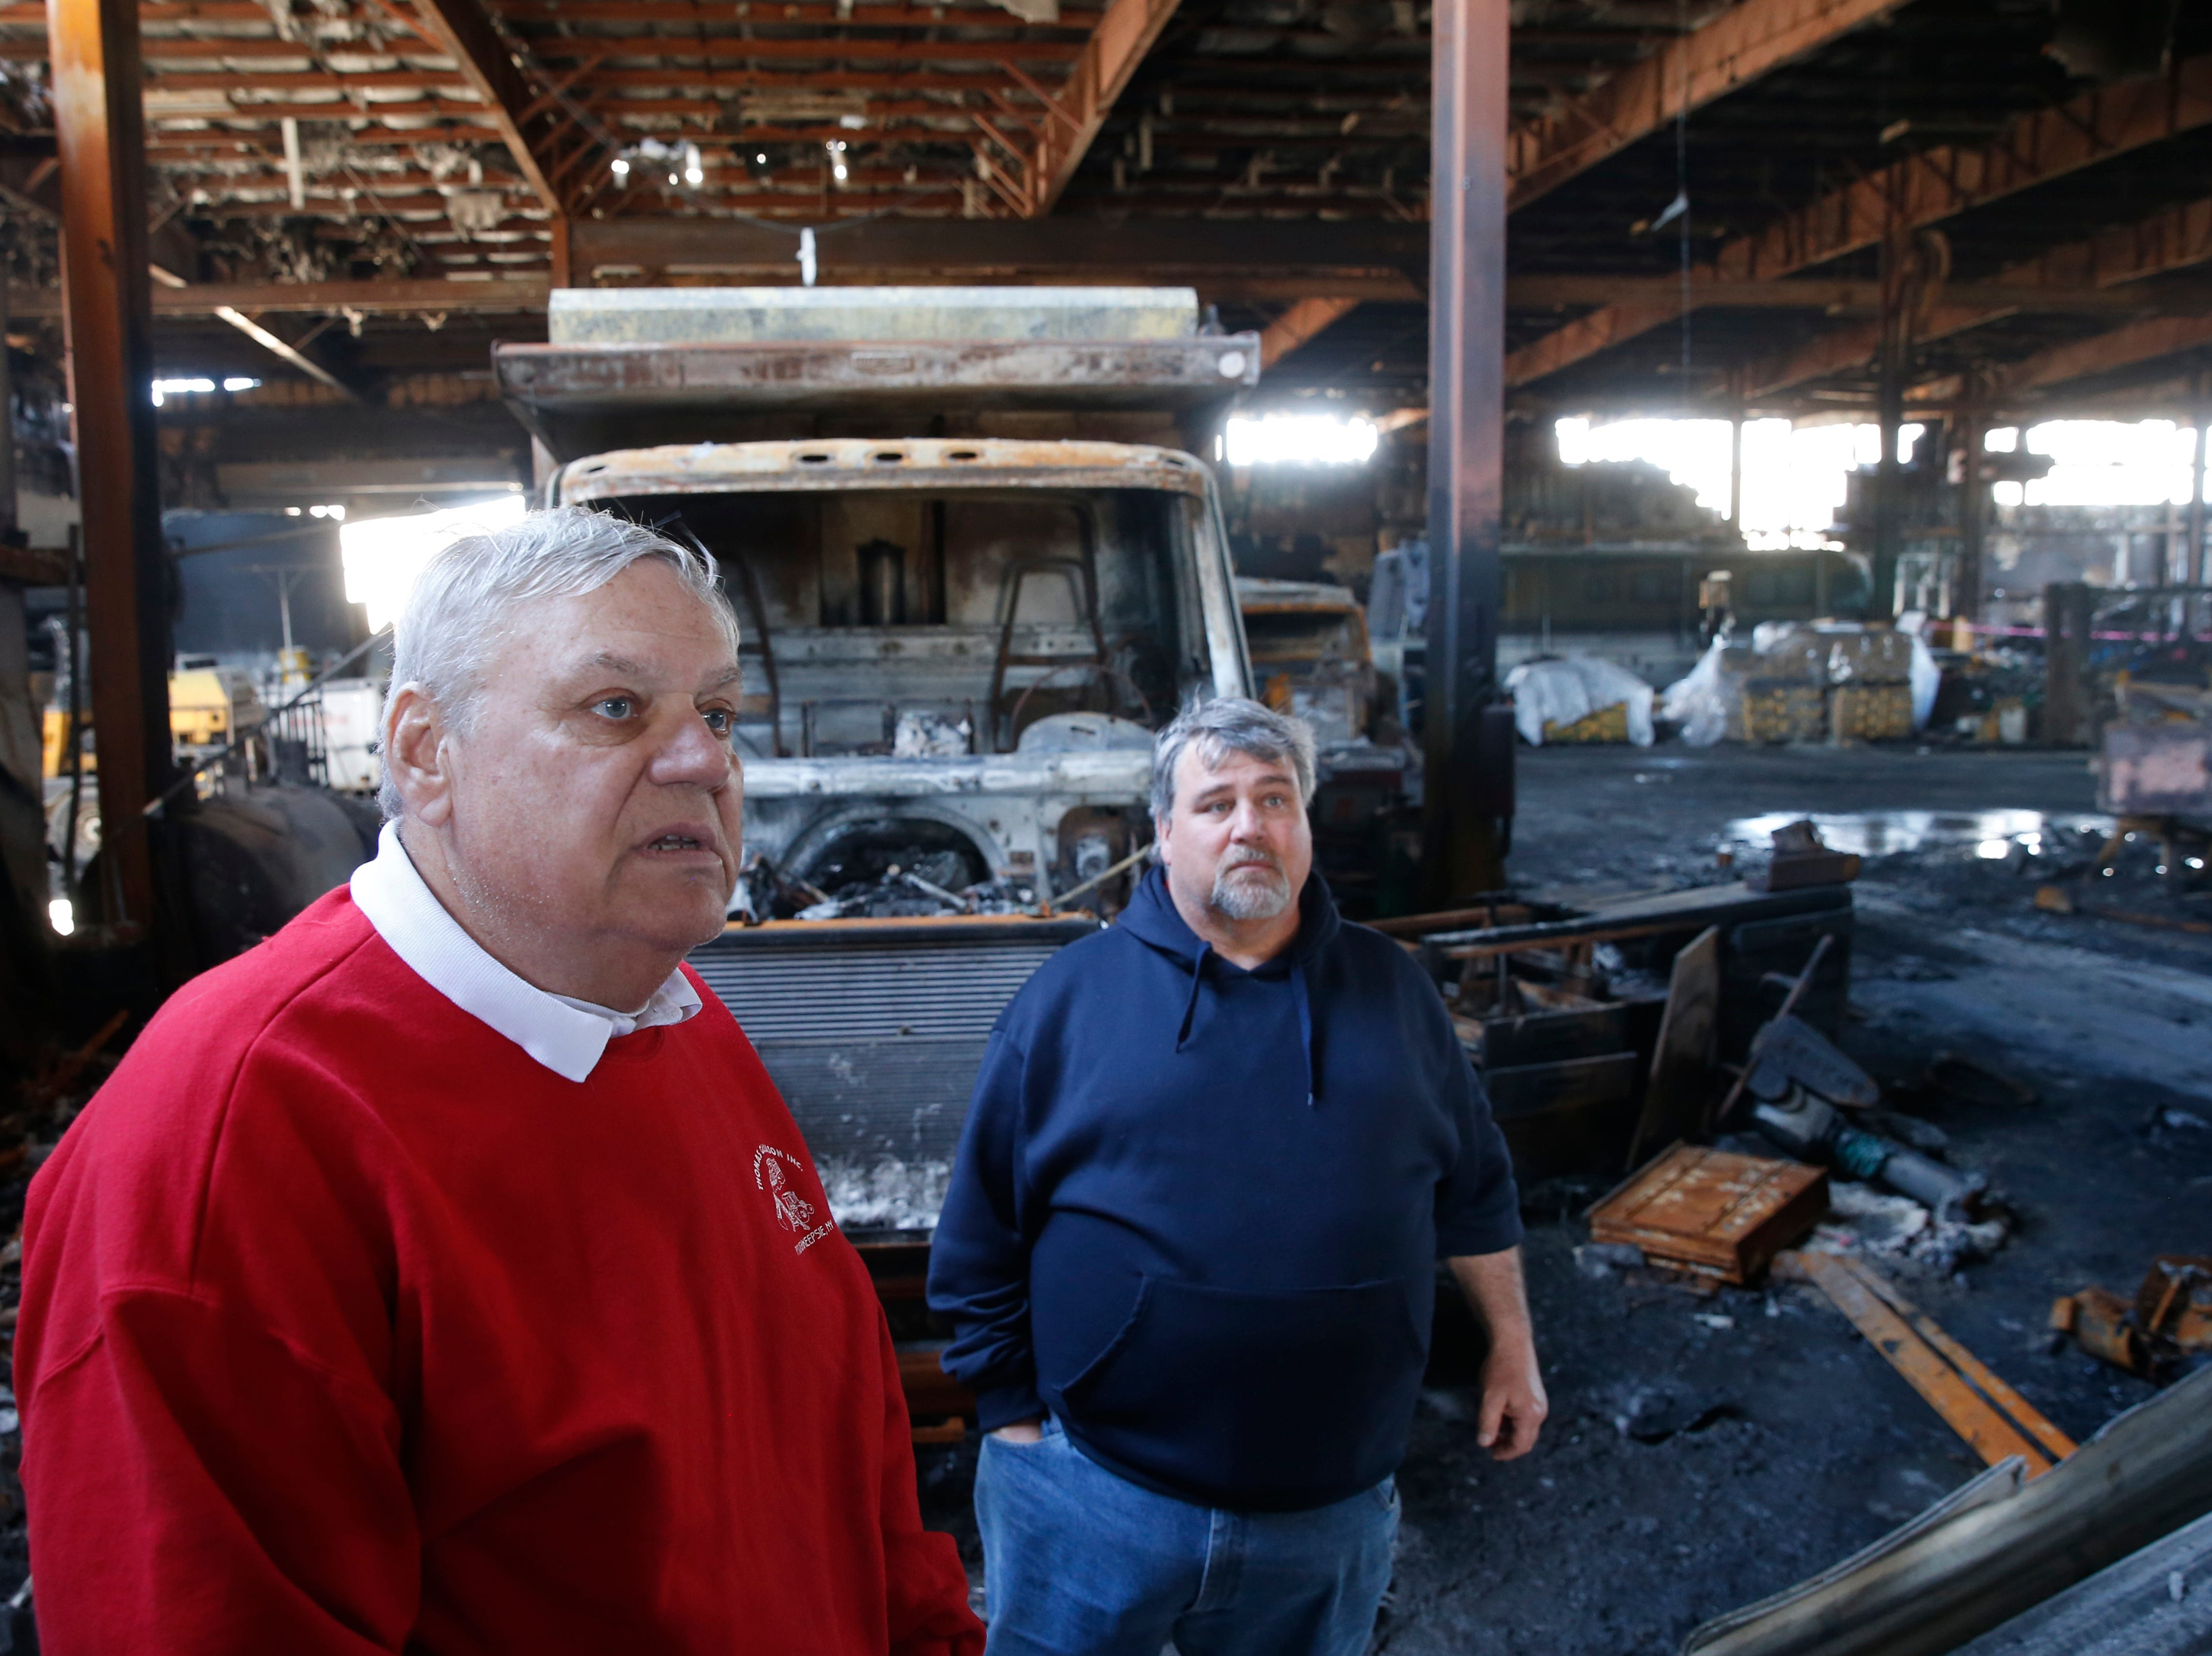 From left, Thomas and Patrick Gleason inside their company's building in the Town of Poughkeepsie on April 17, 2019. A massive fire in March destroyed much of the building's contents and the structural integrity of the building.